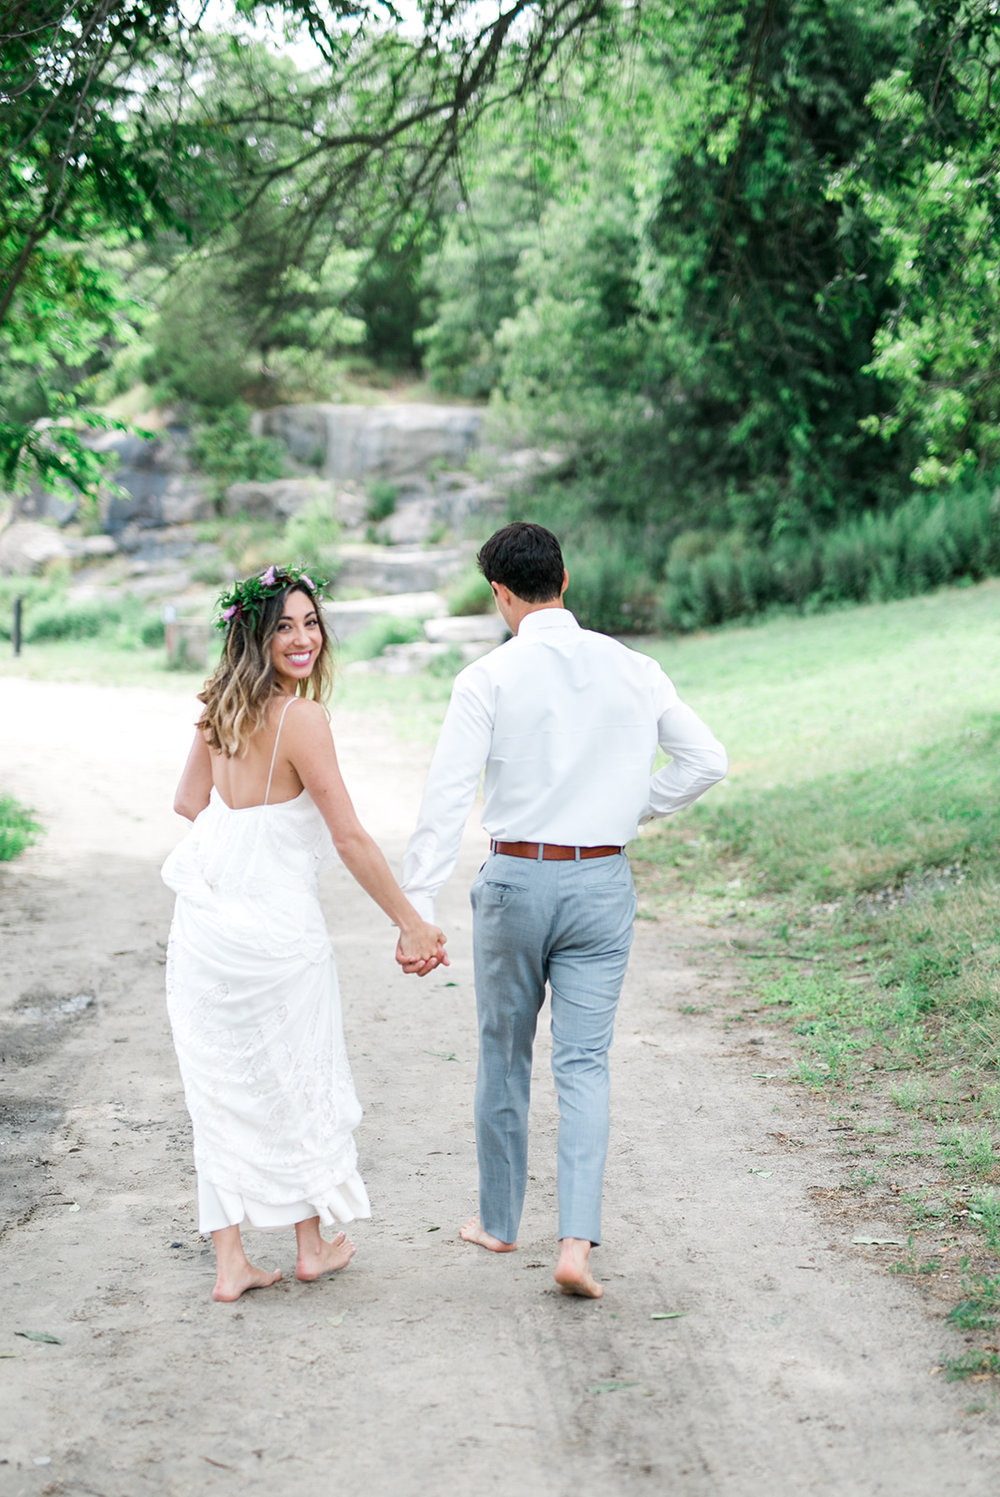 Bride and Groom walking Rocky Neck State Park in Connecticut - Pearl Weddings & Events